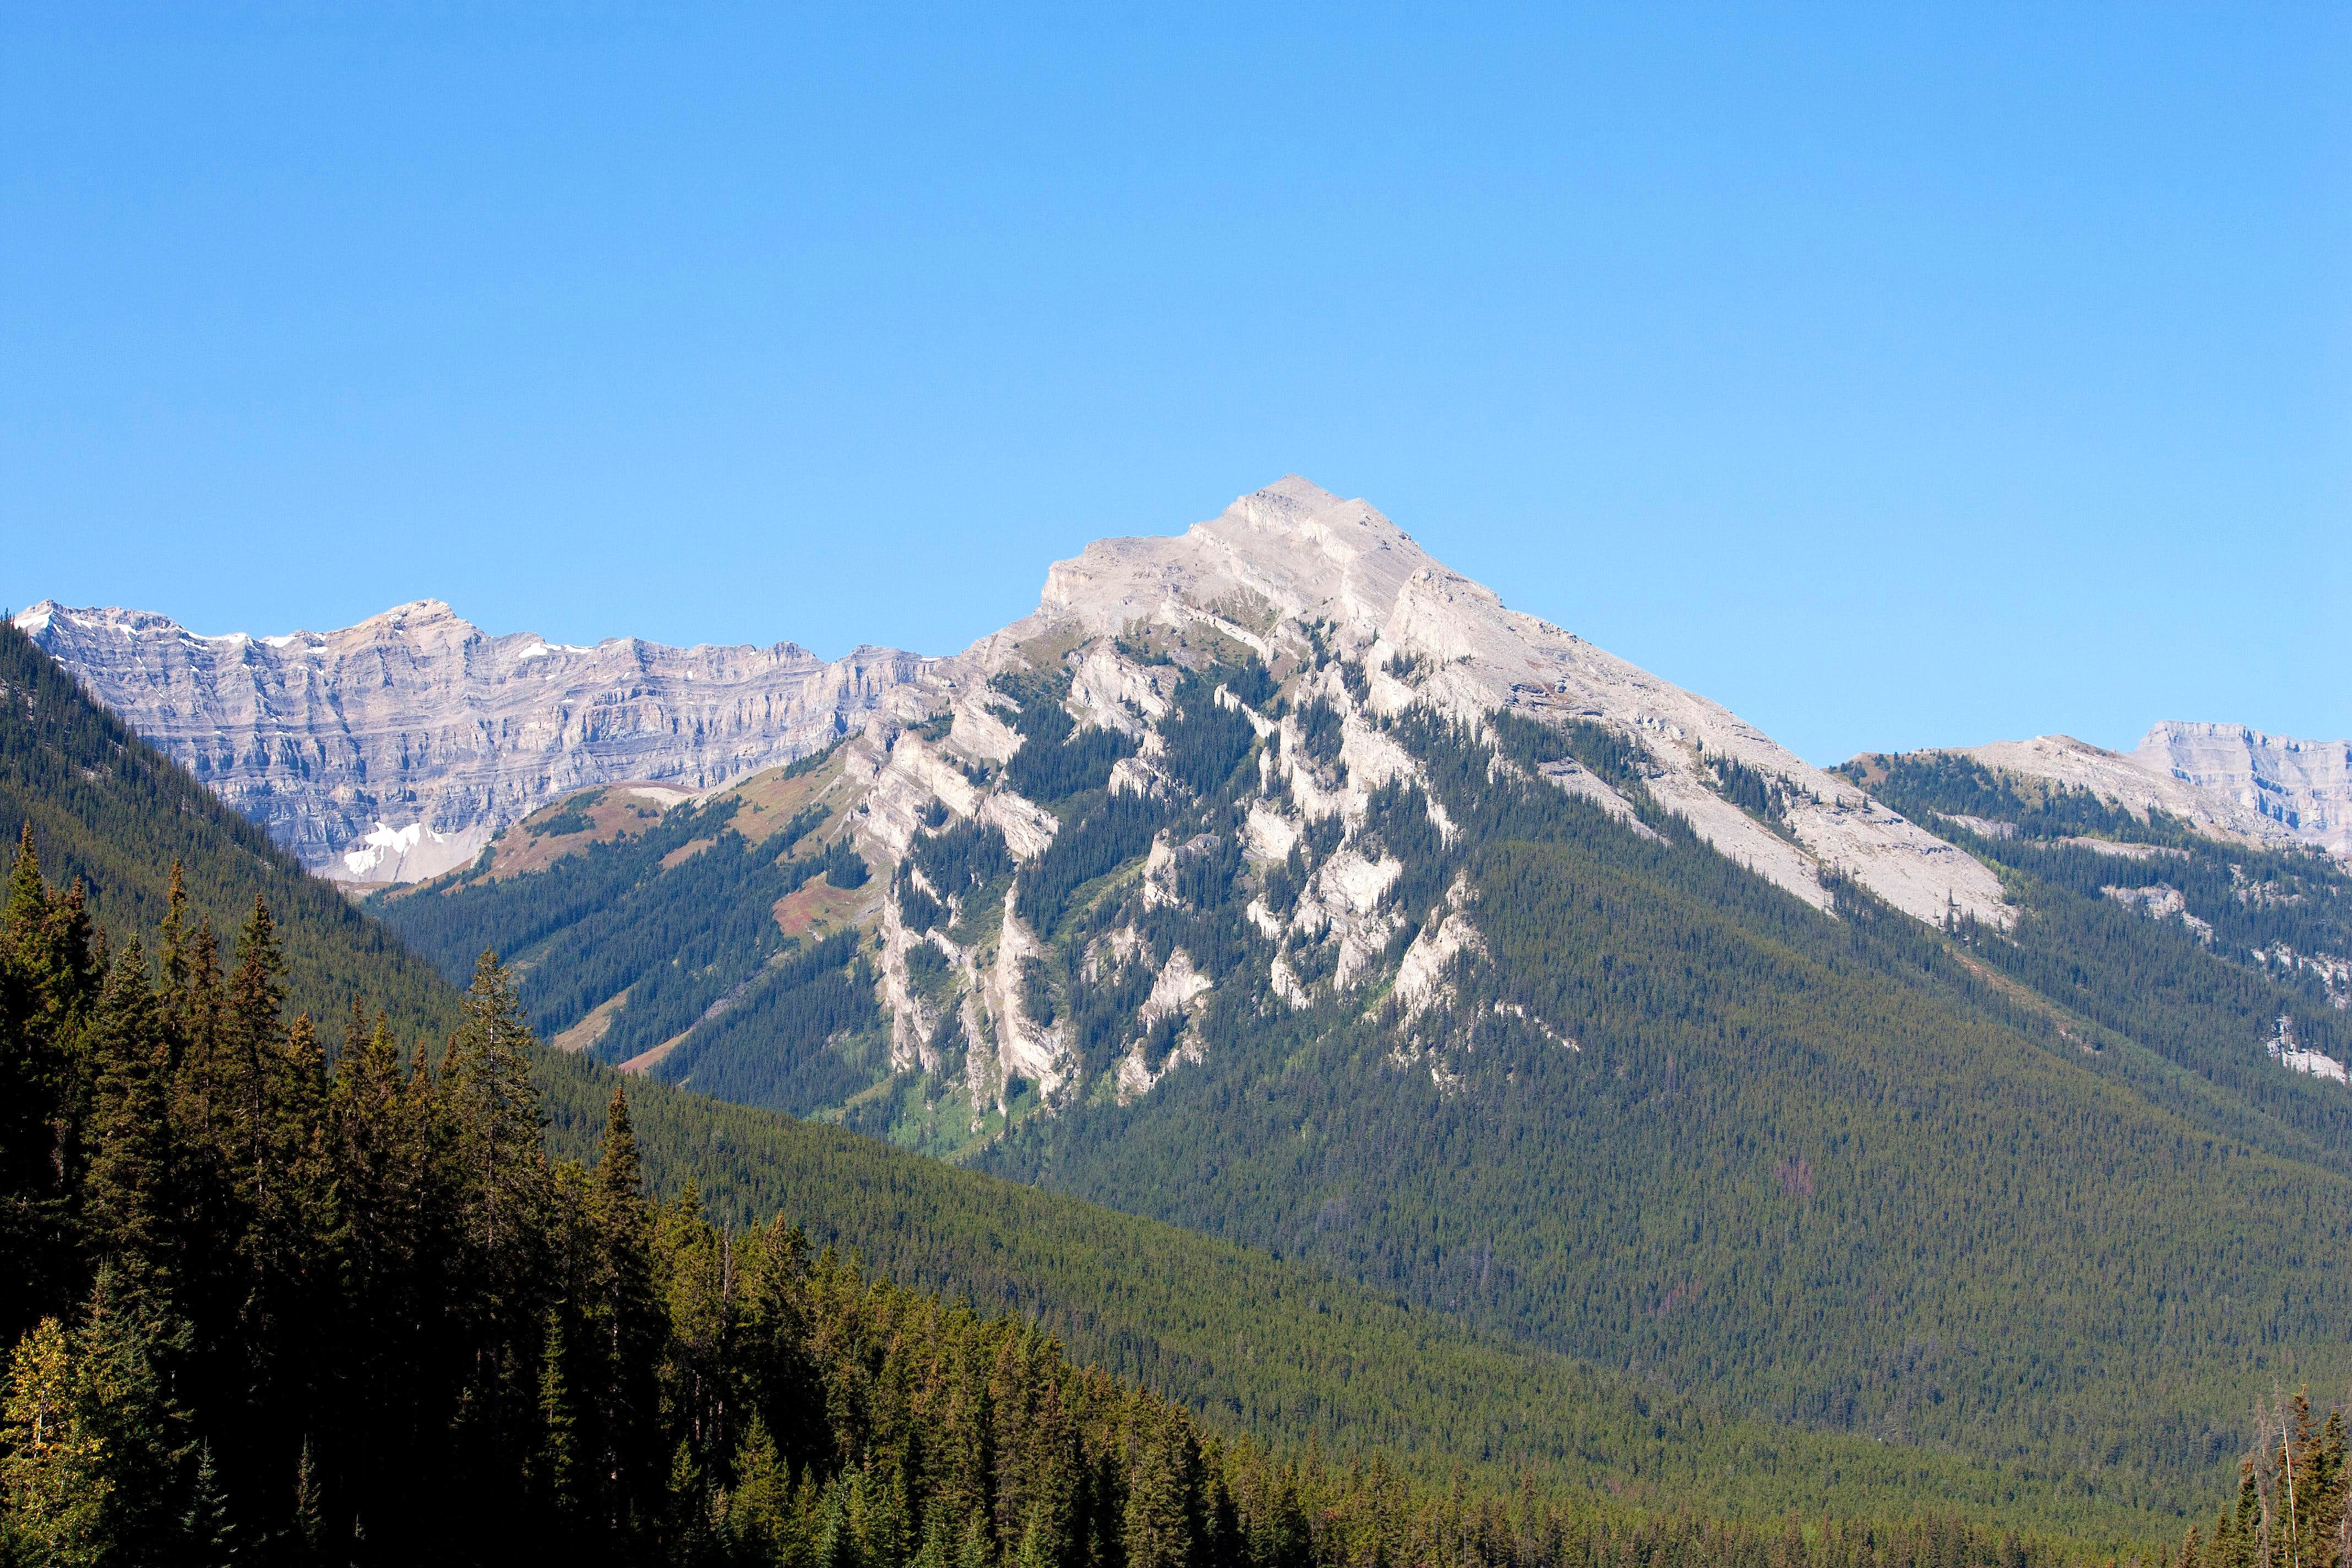 Heading to Banff National Park